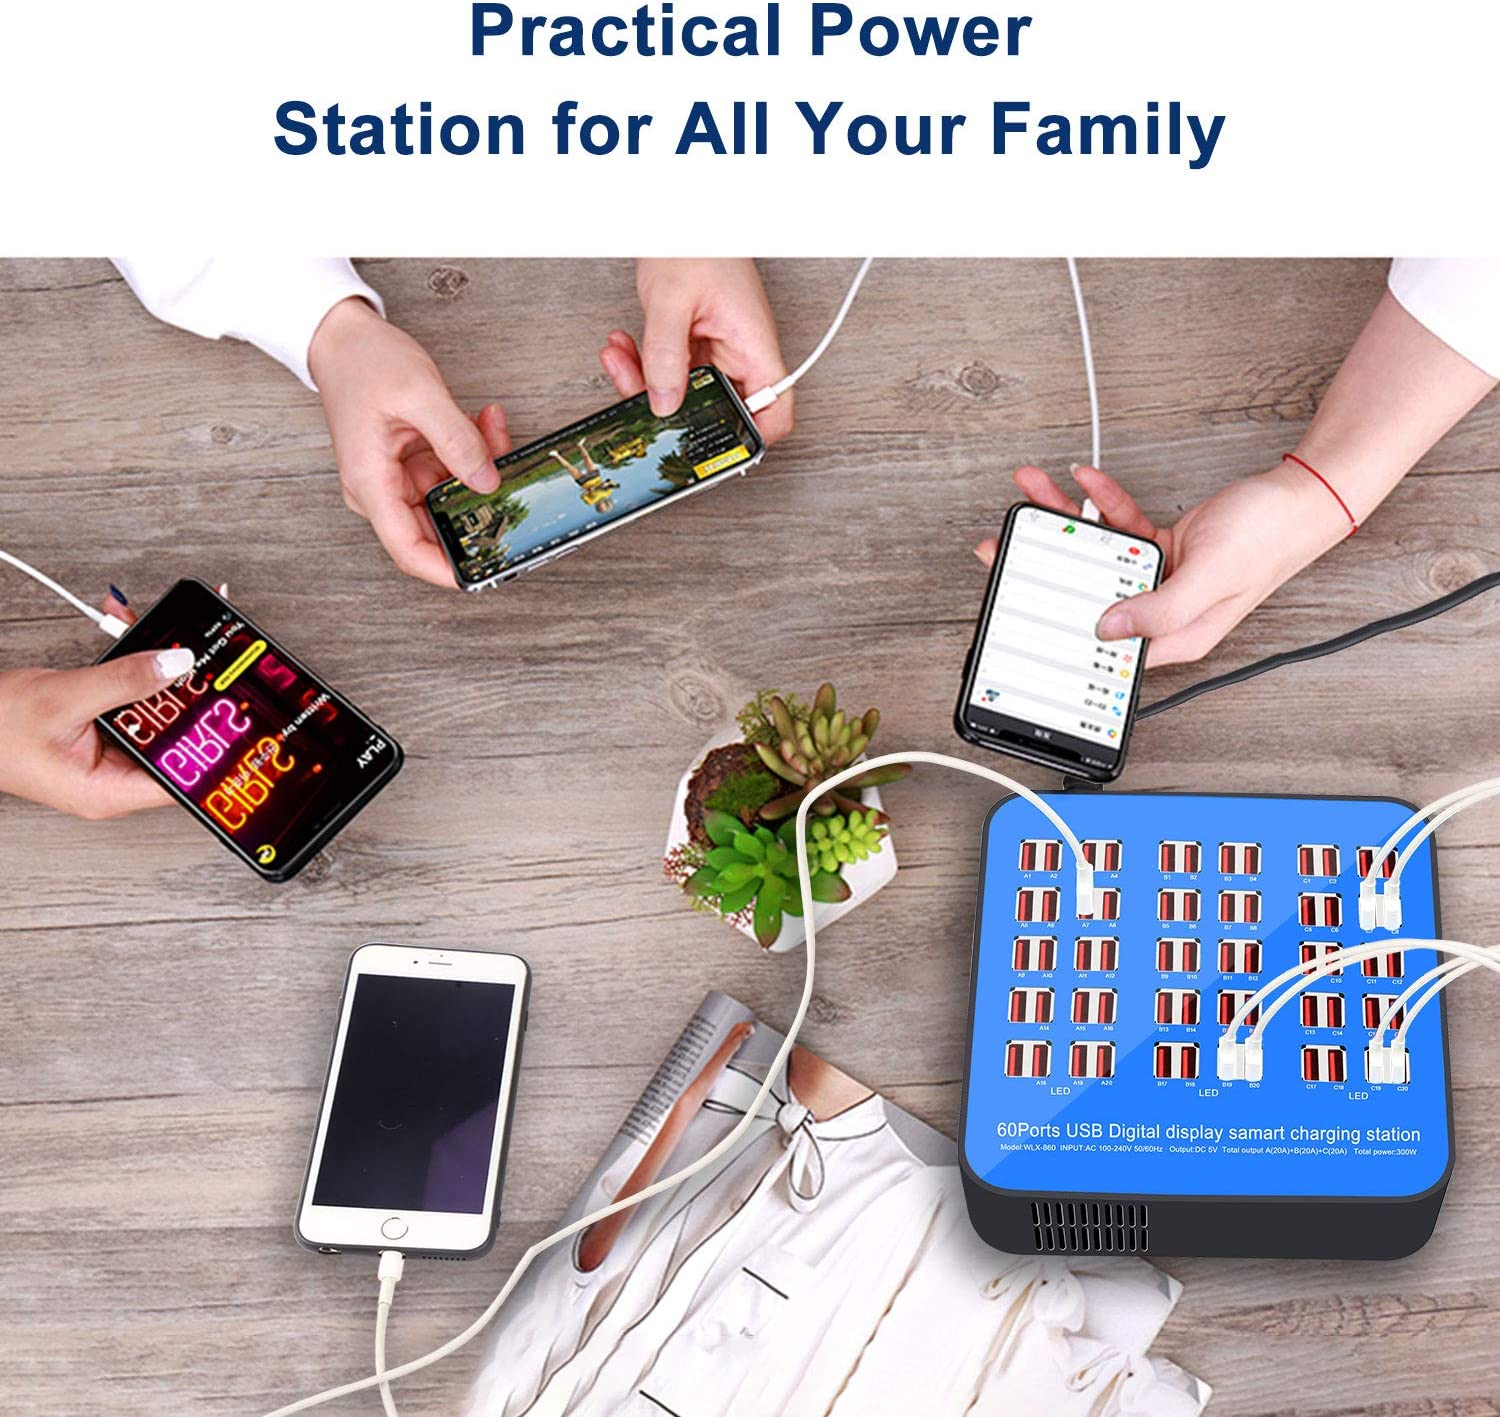 60 Ports USB Power Station,Multi Port USB Wall Charger Adapter 2019 Newest Style USB Charging Station Noninterference Multiport Desktop USB Rapid Charger for Hotel School Shopping malls